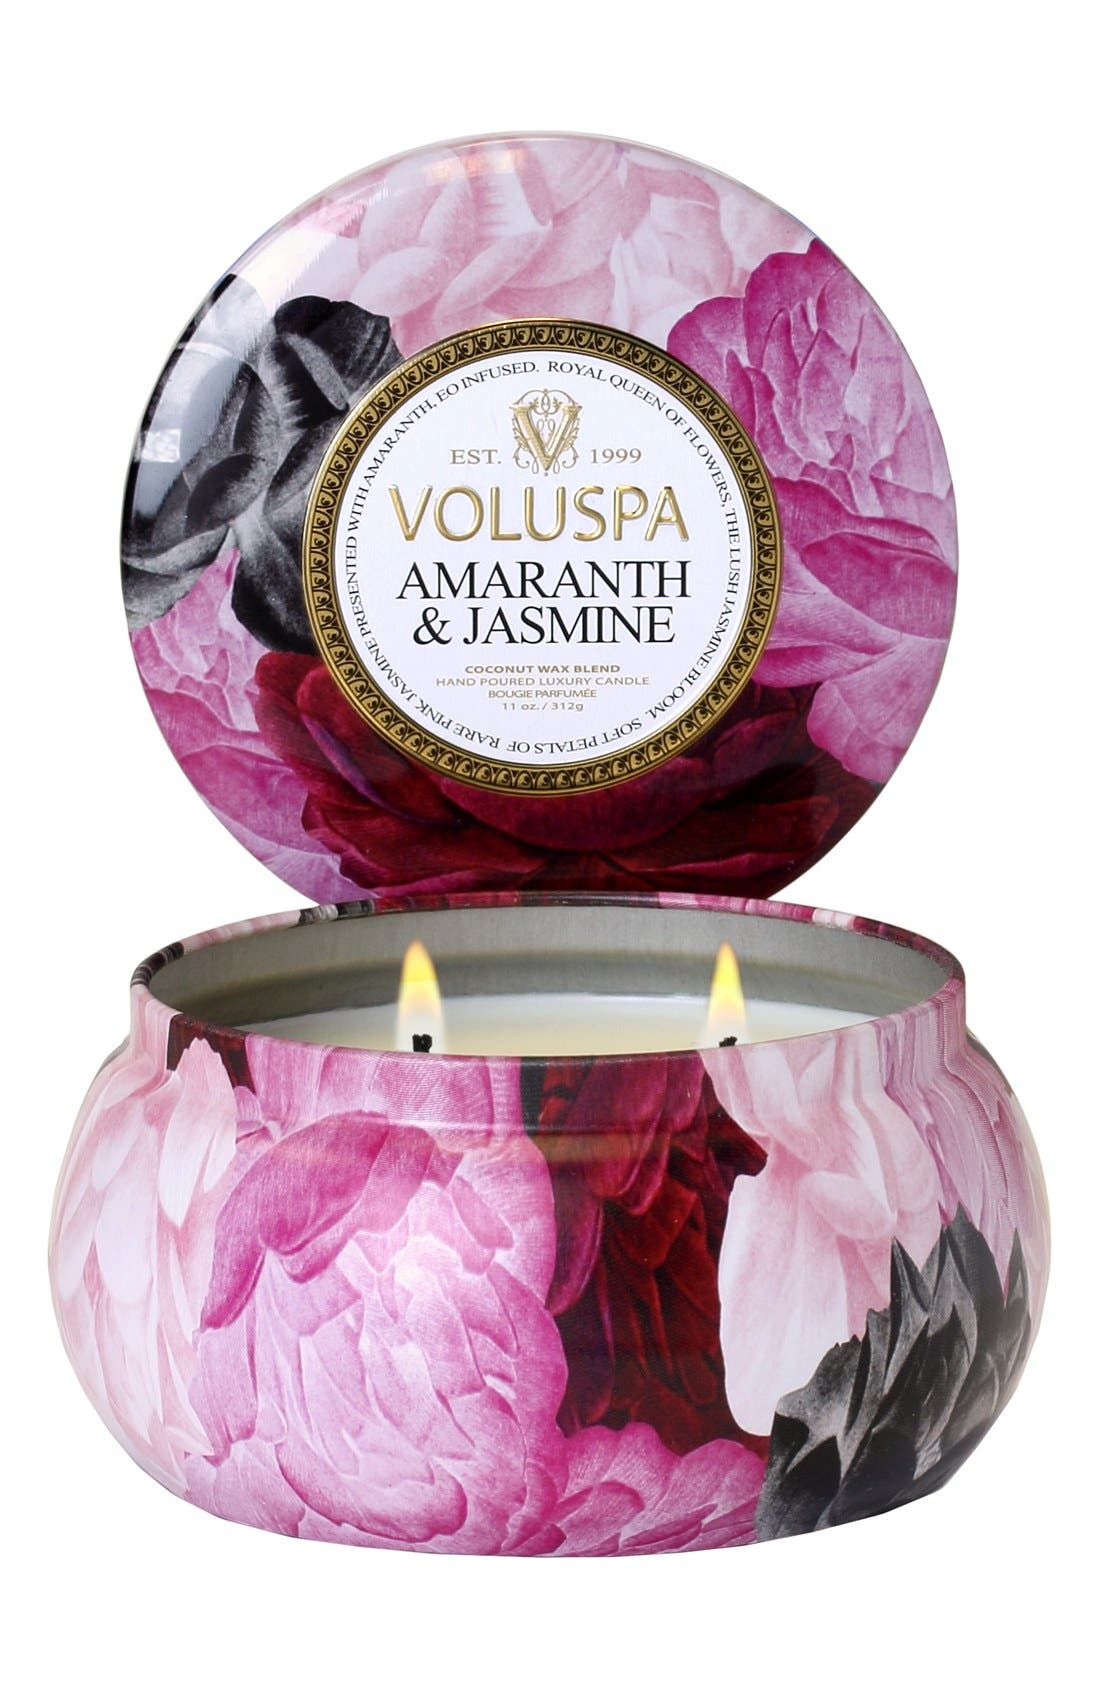 Maison Jardin - Amaranth & Jasmine Two-Wick Candle,                         Main,                         color, No Color